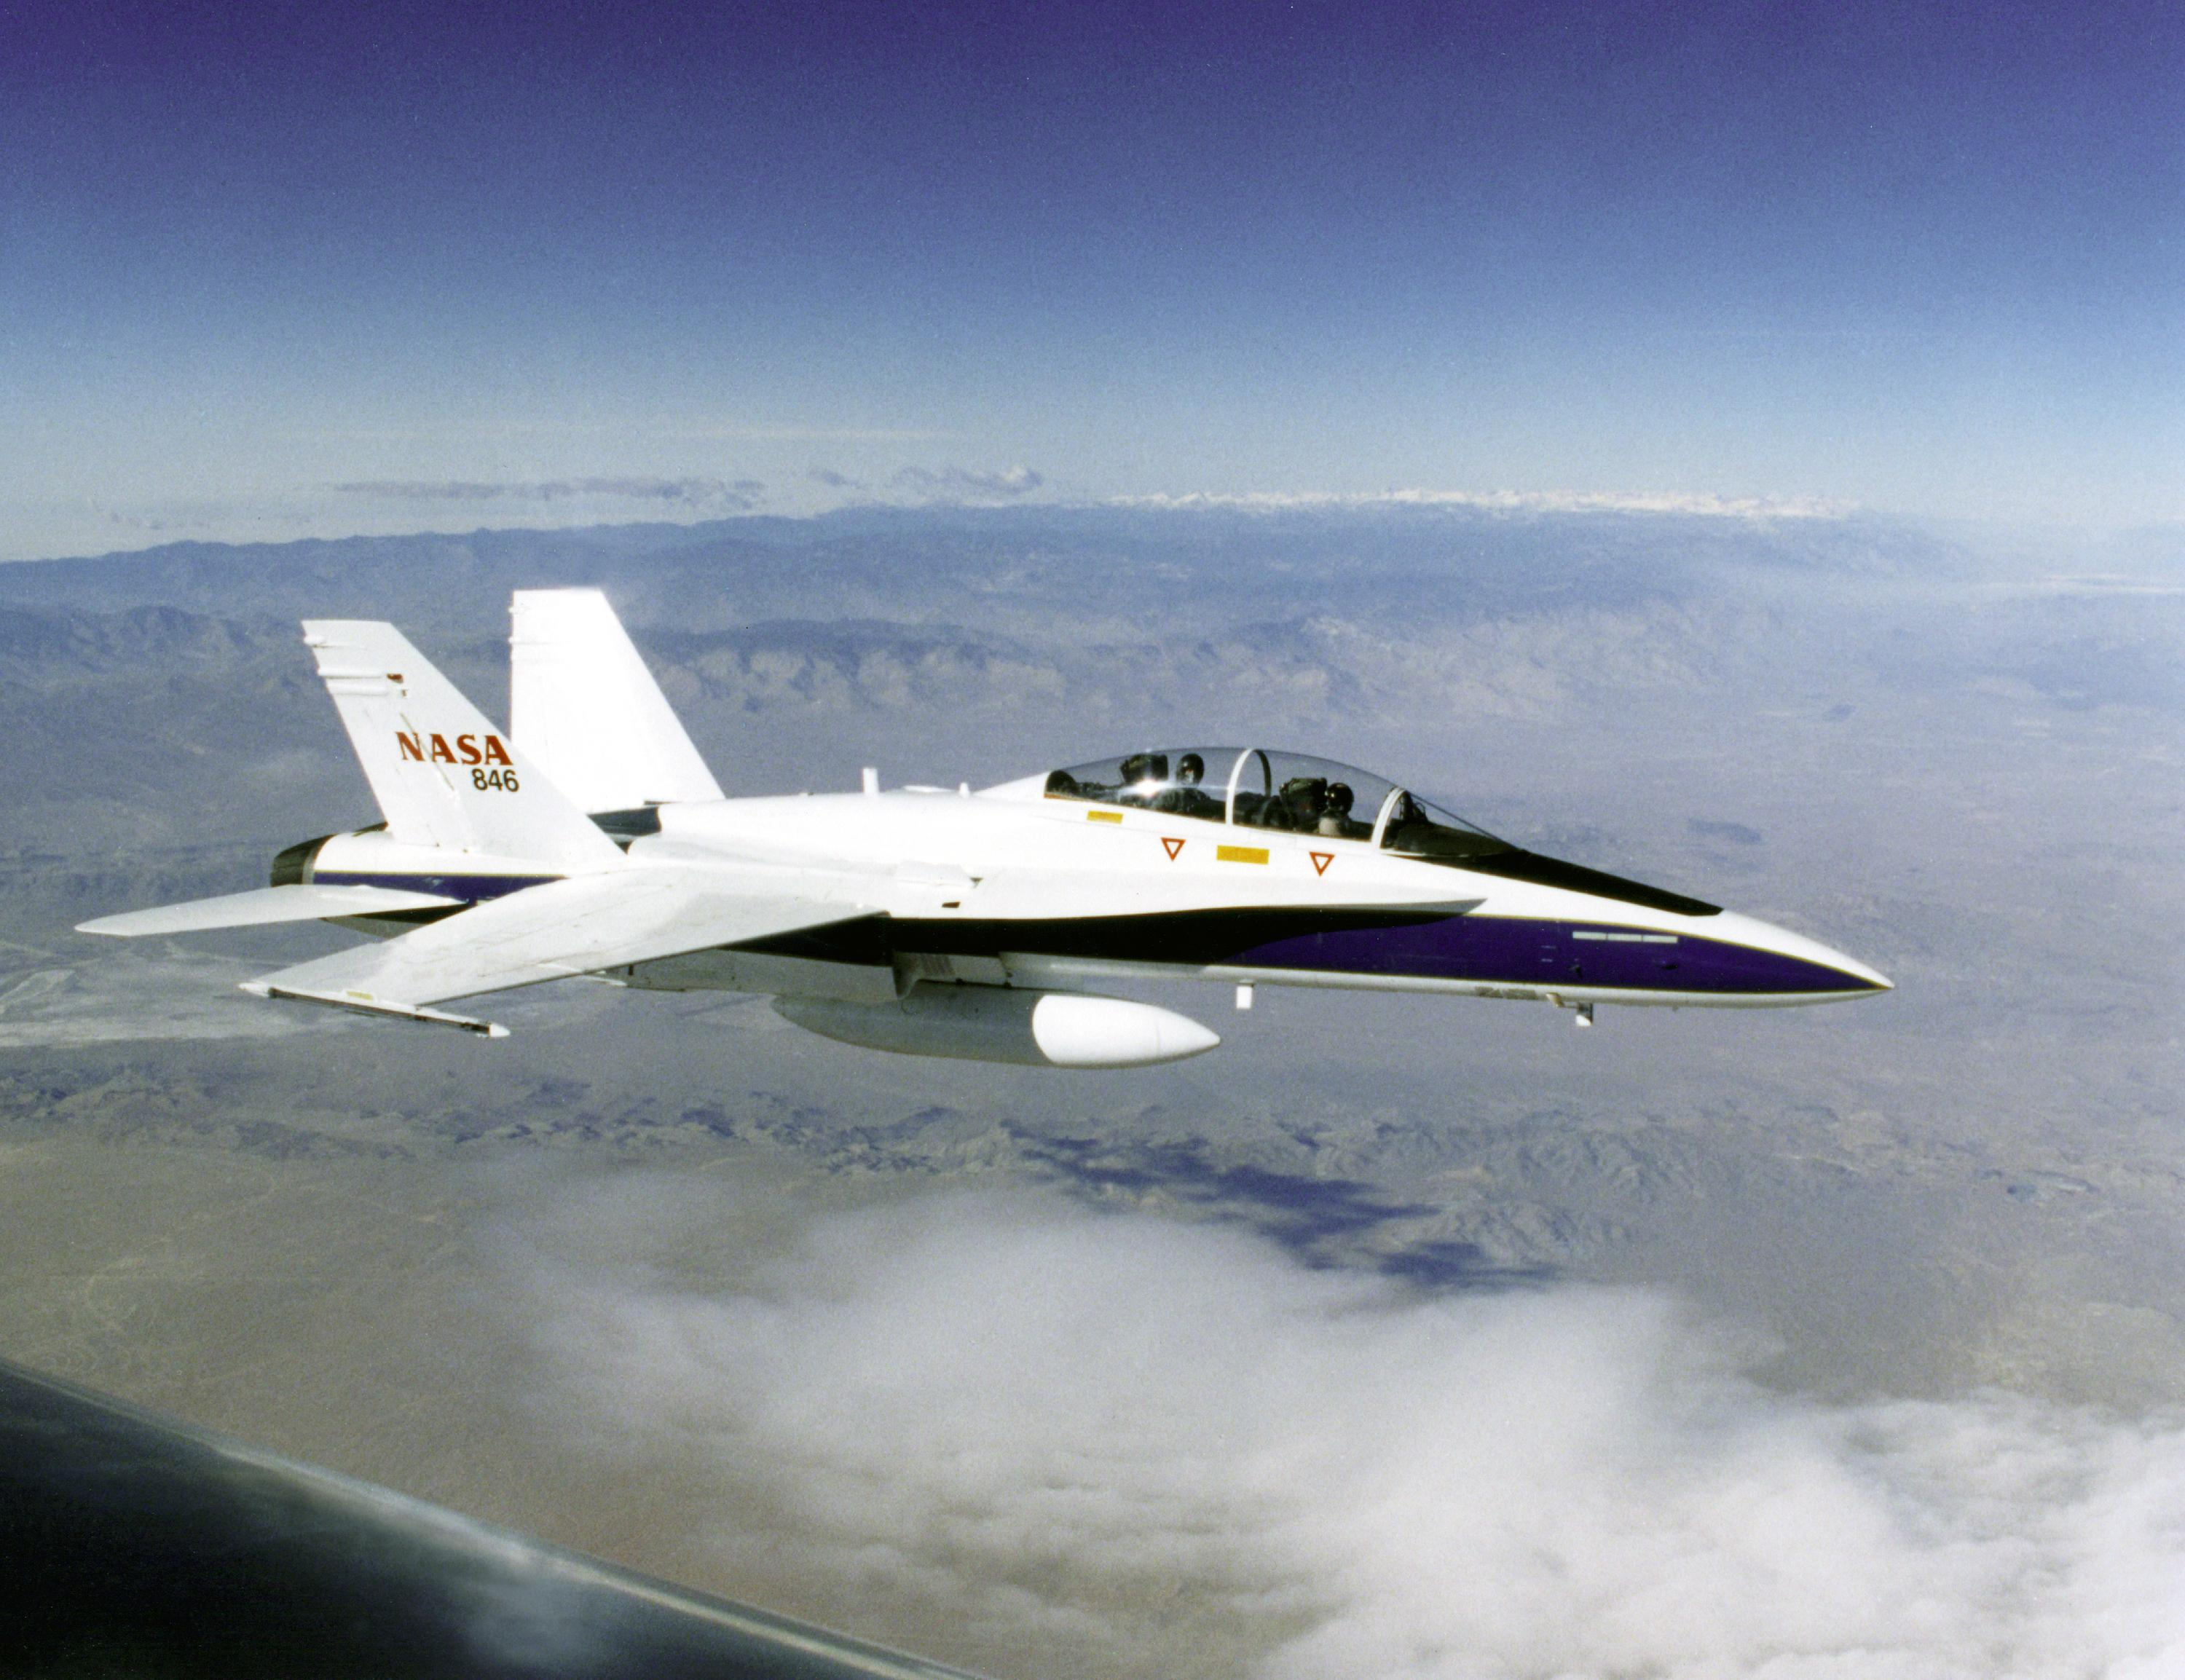 nasa fighter aircraft - photo #38